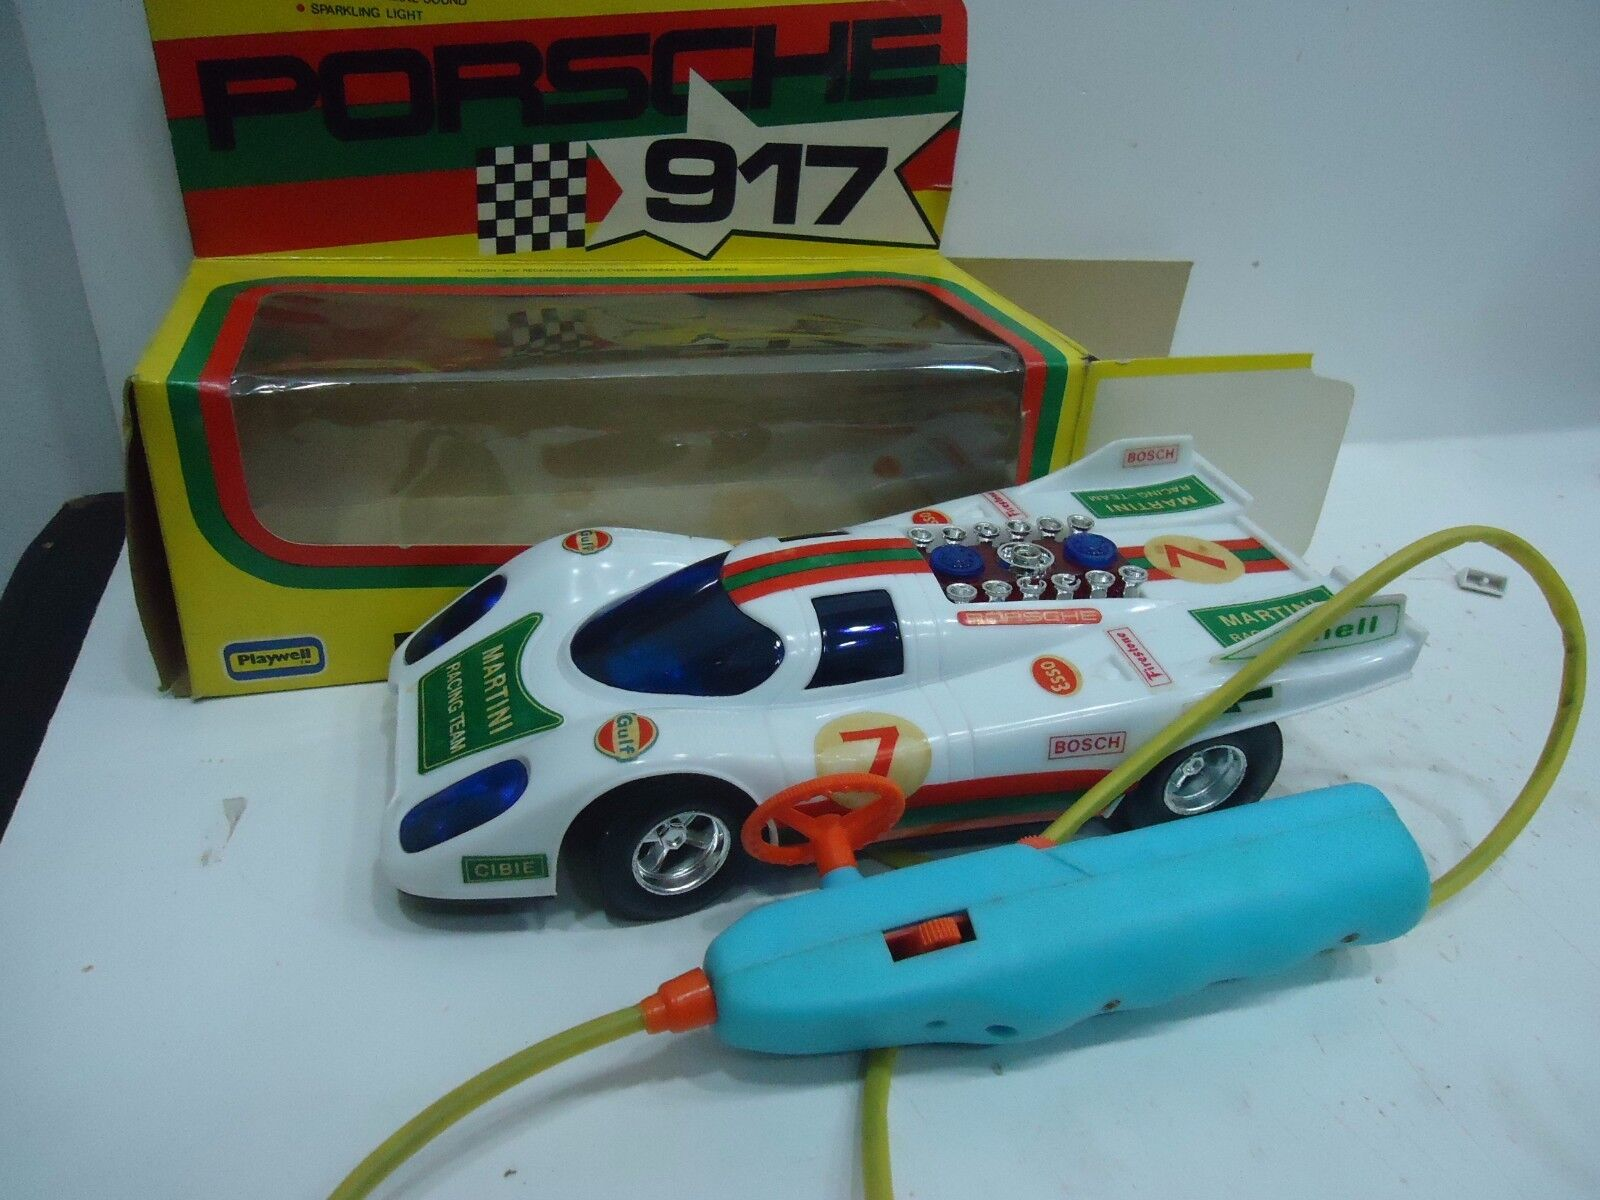 PORSCHE 917 REMOTE CONTROL BATTERY OPERATED PLAYWELL MADE IN HONG KONG